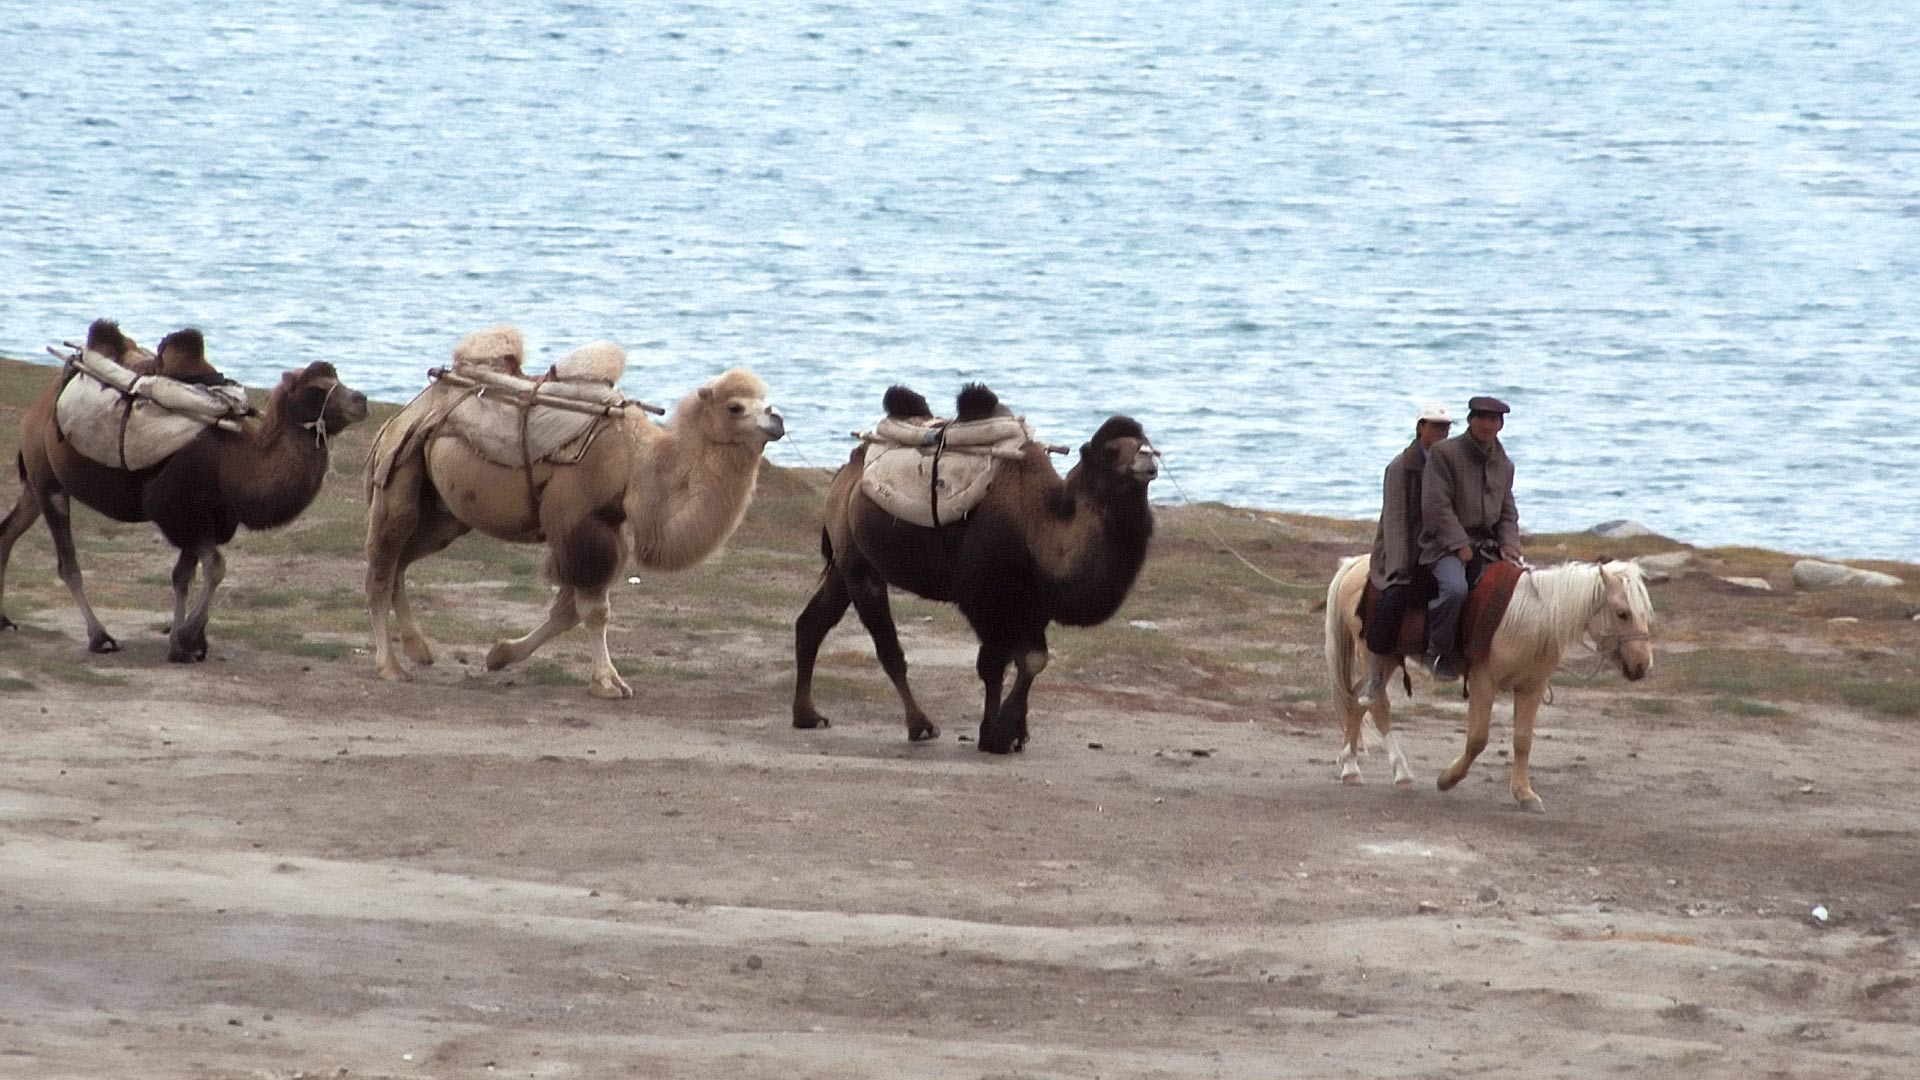 Men on horseback and Bactrian Camel (Camelus bactrianus) caravan by Lesser Karakul Lake, Xinjiang, China